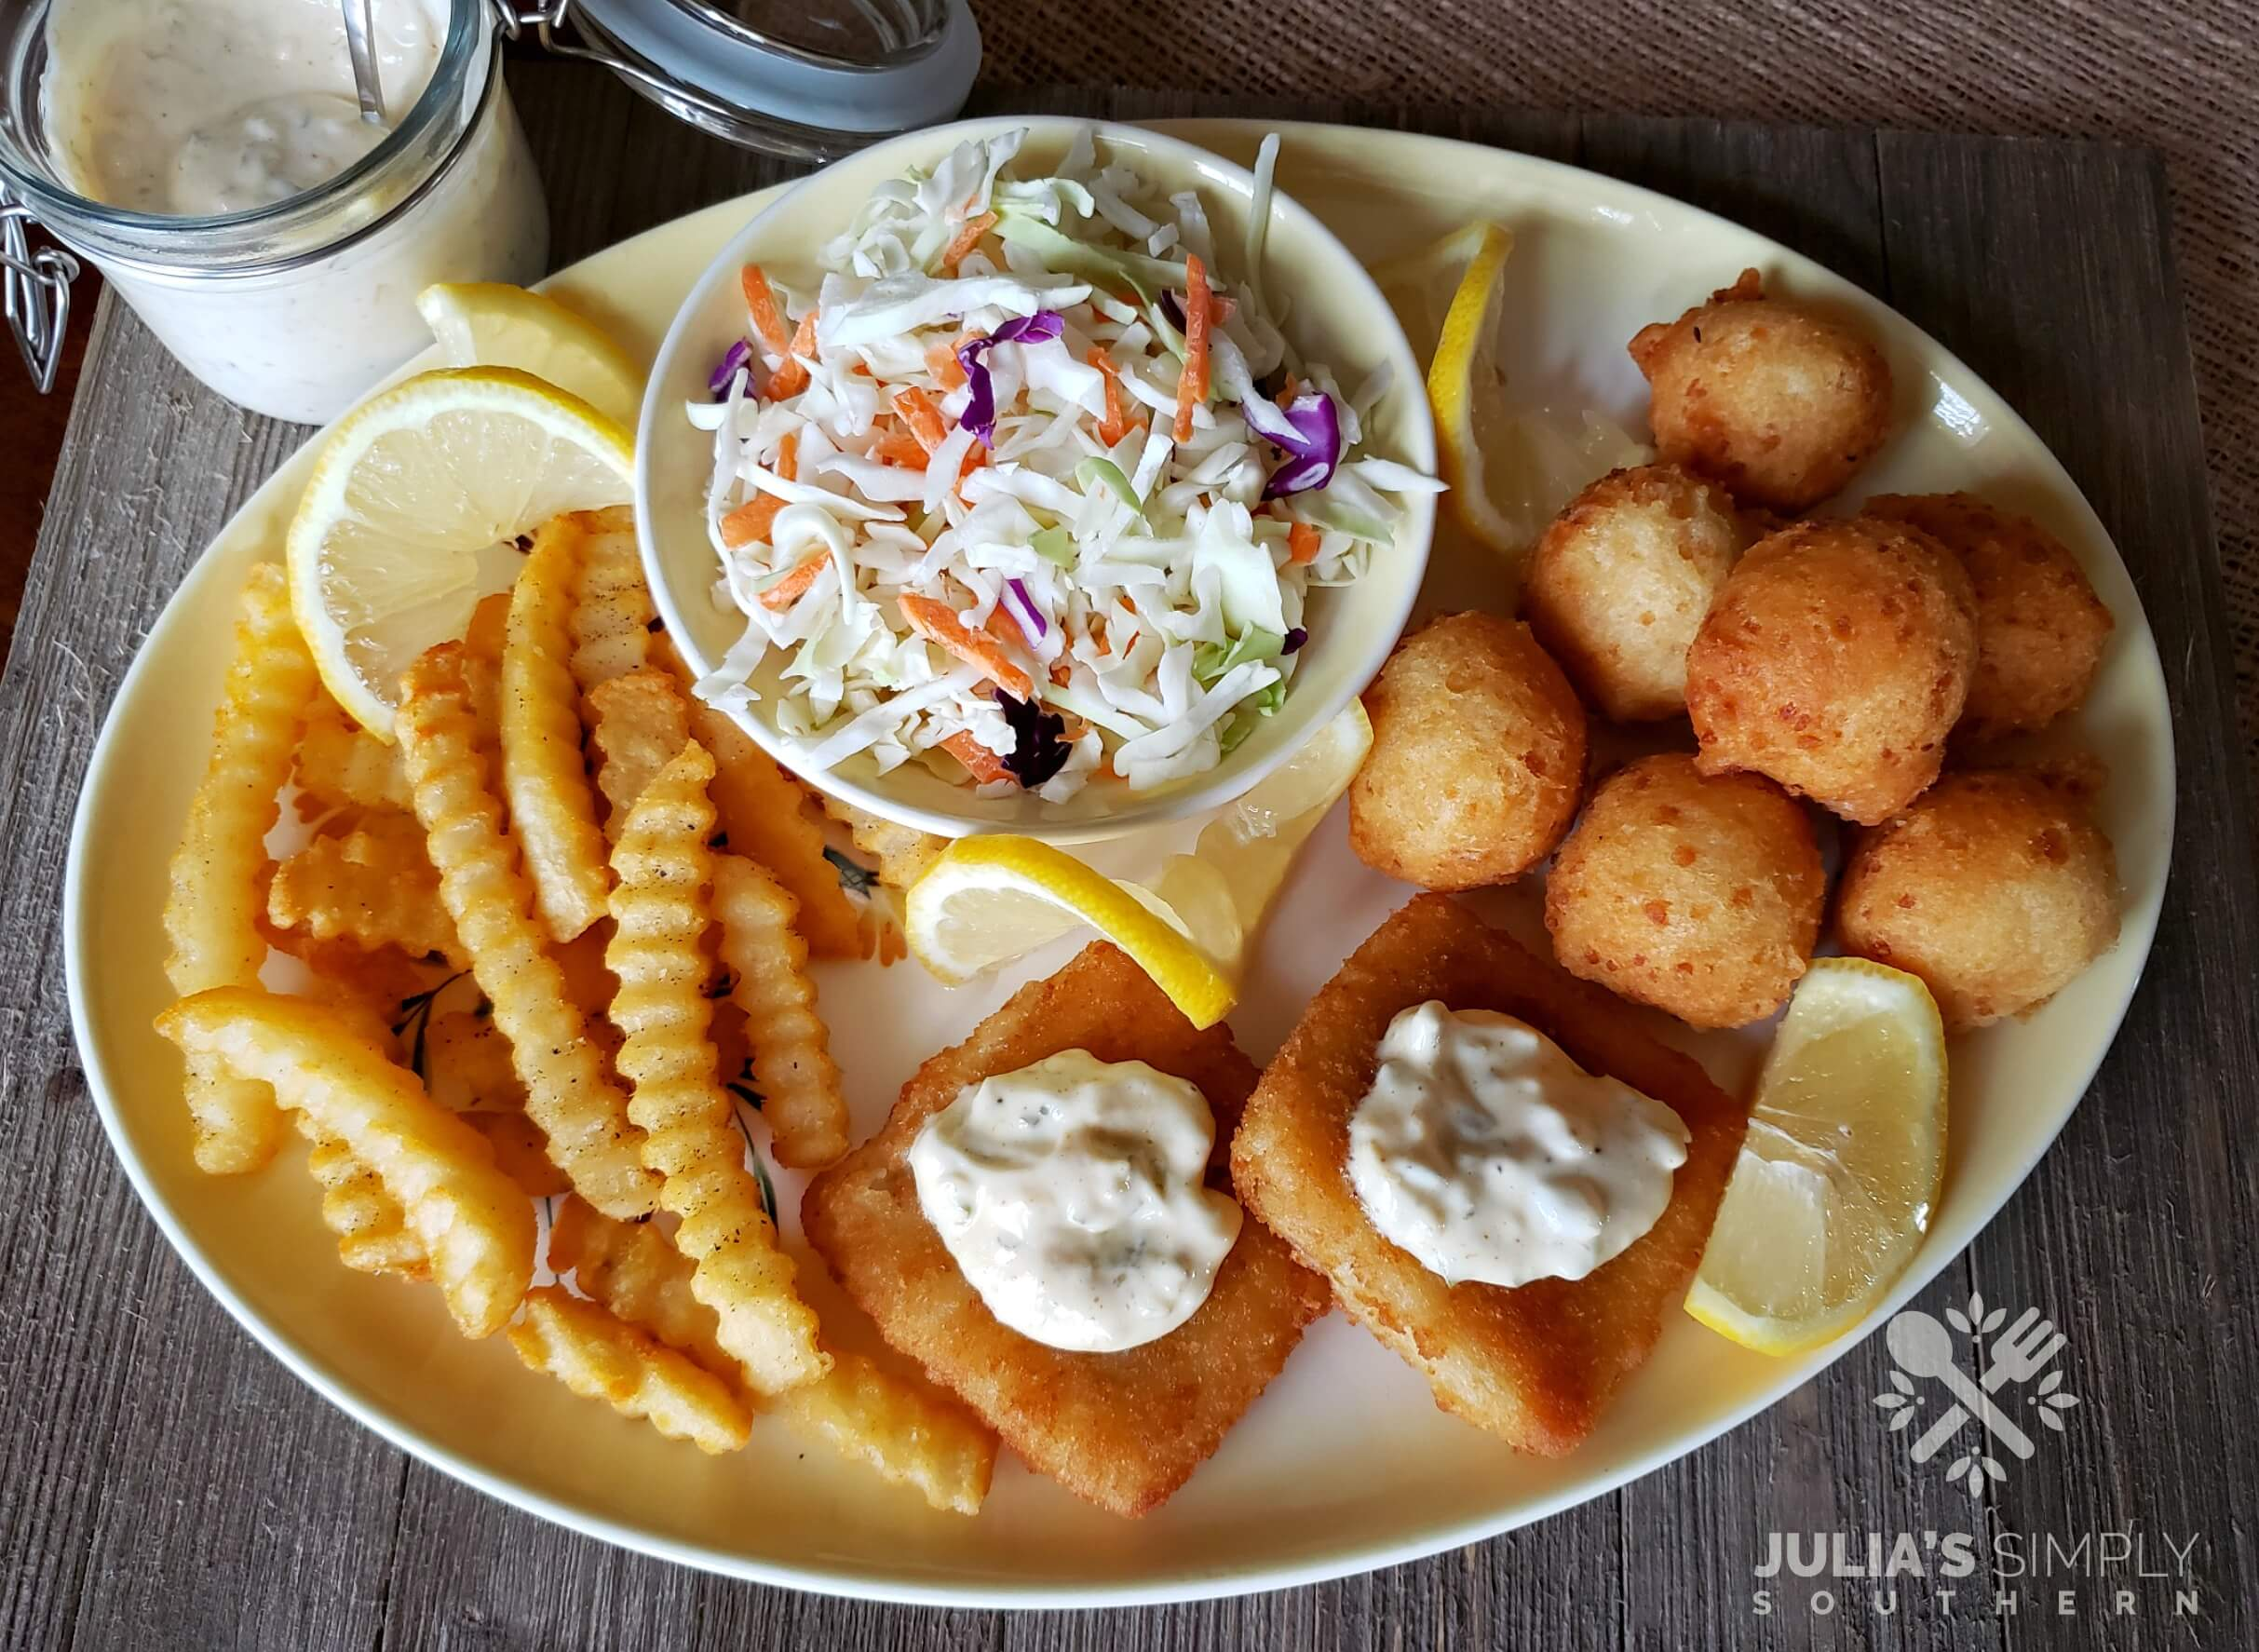 Seafood platter at home